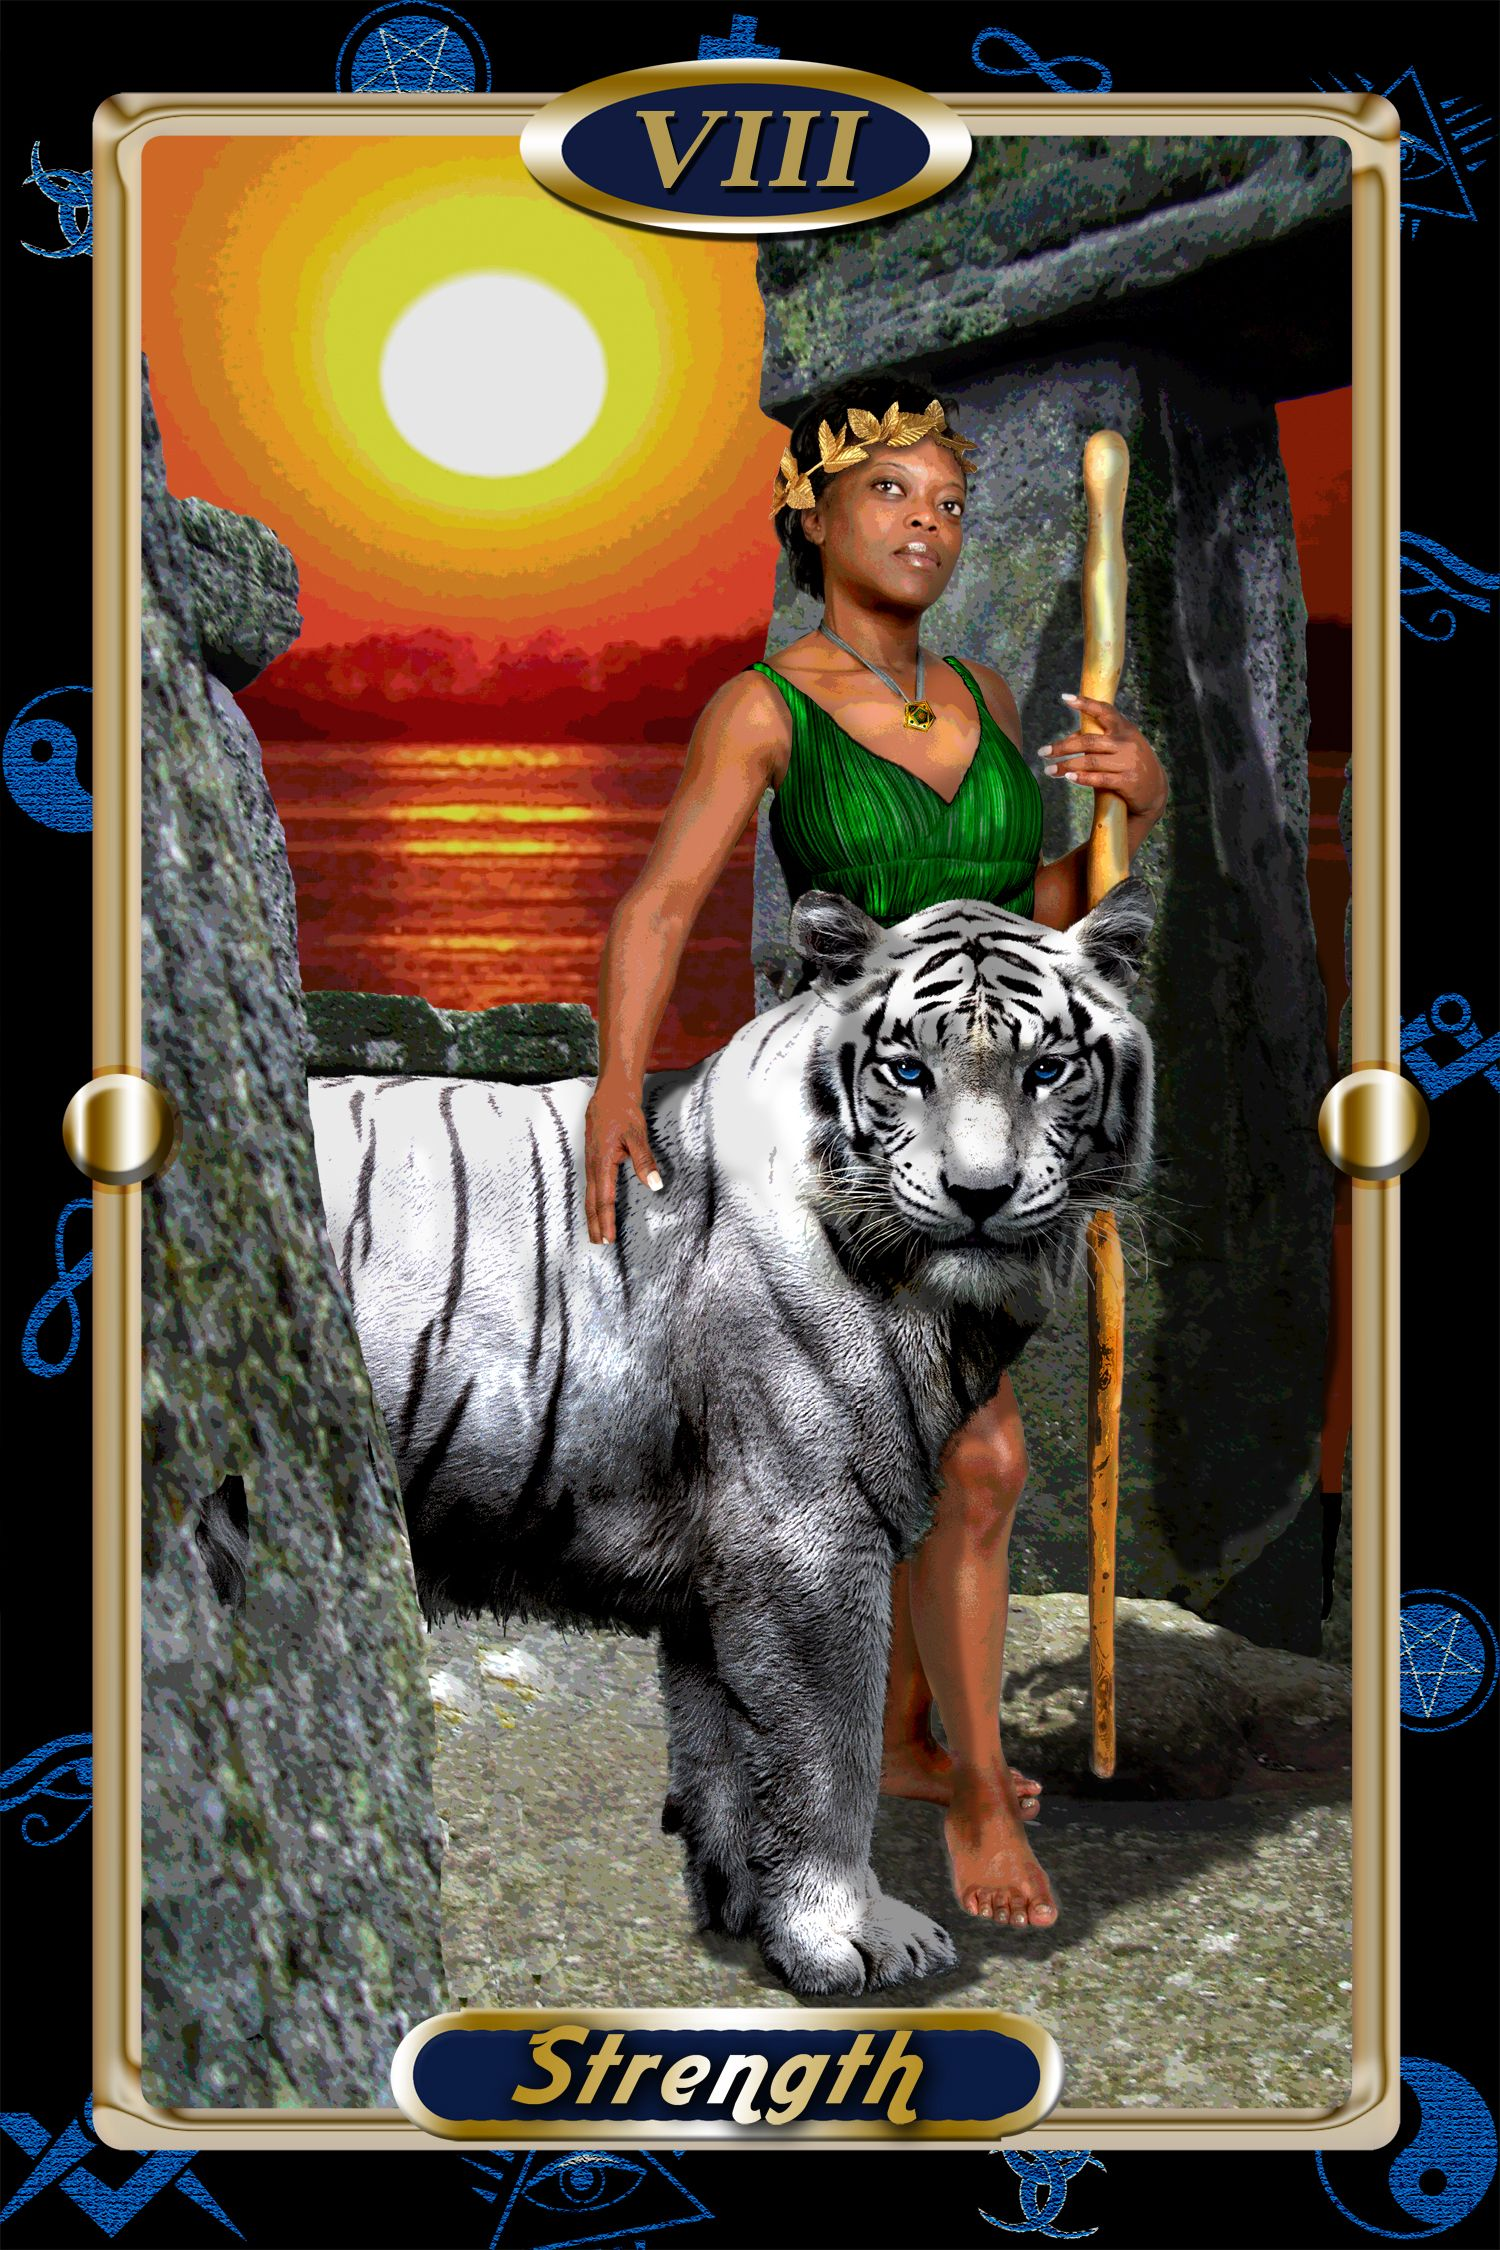 My tarot card of strength professionally done not by me